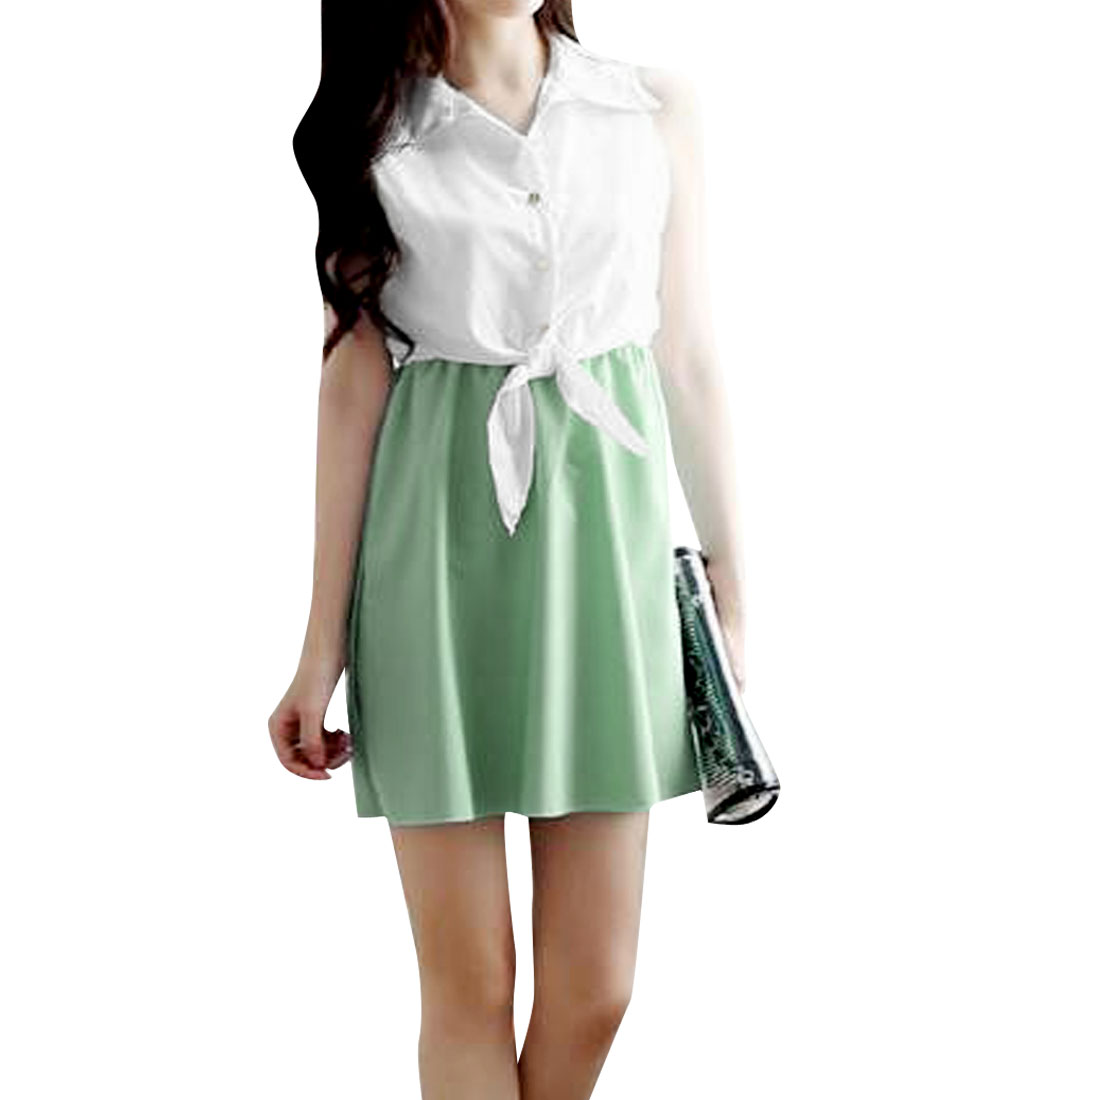 Lady Buttons Front Straped Decor Waist White Mint Green Mini Dress XS